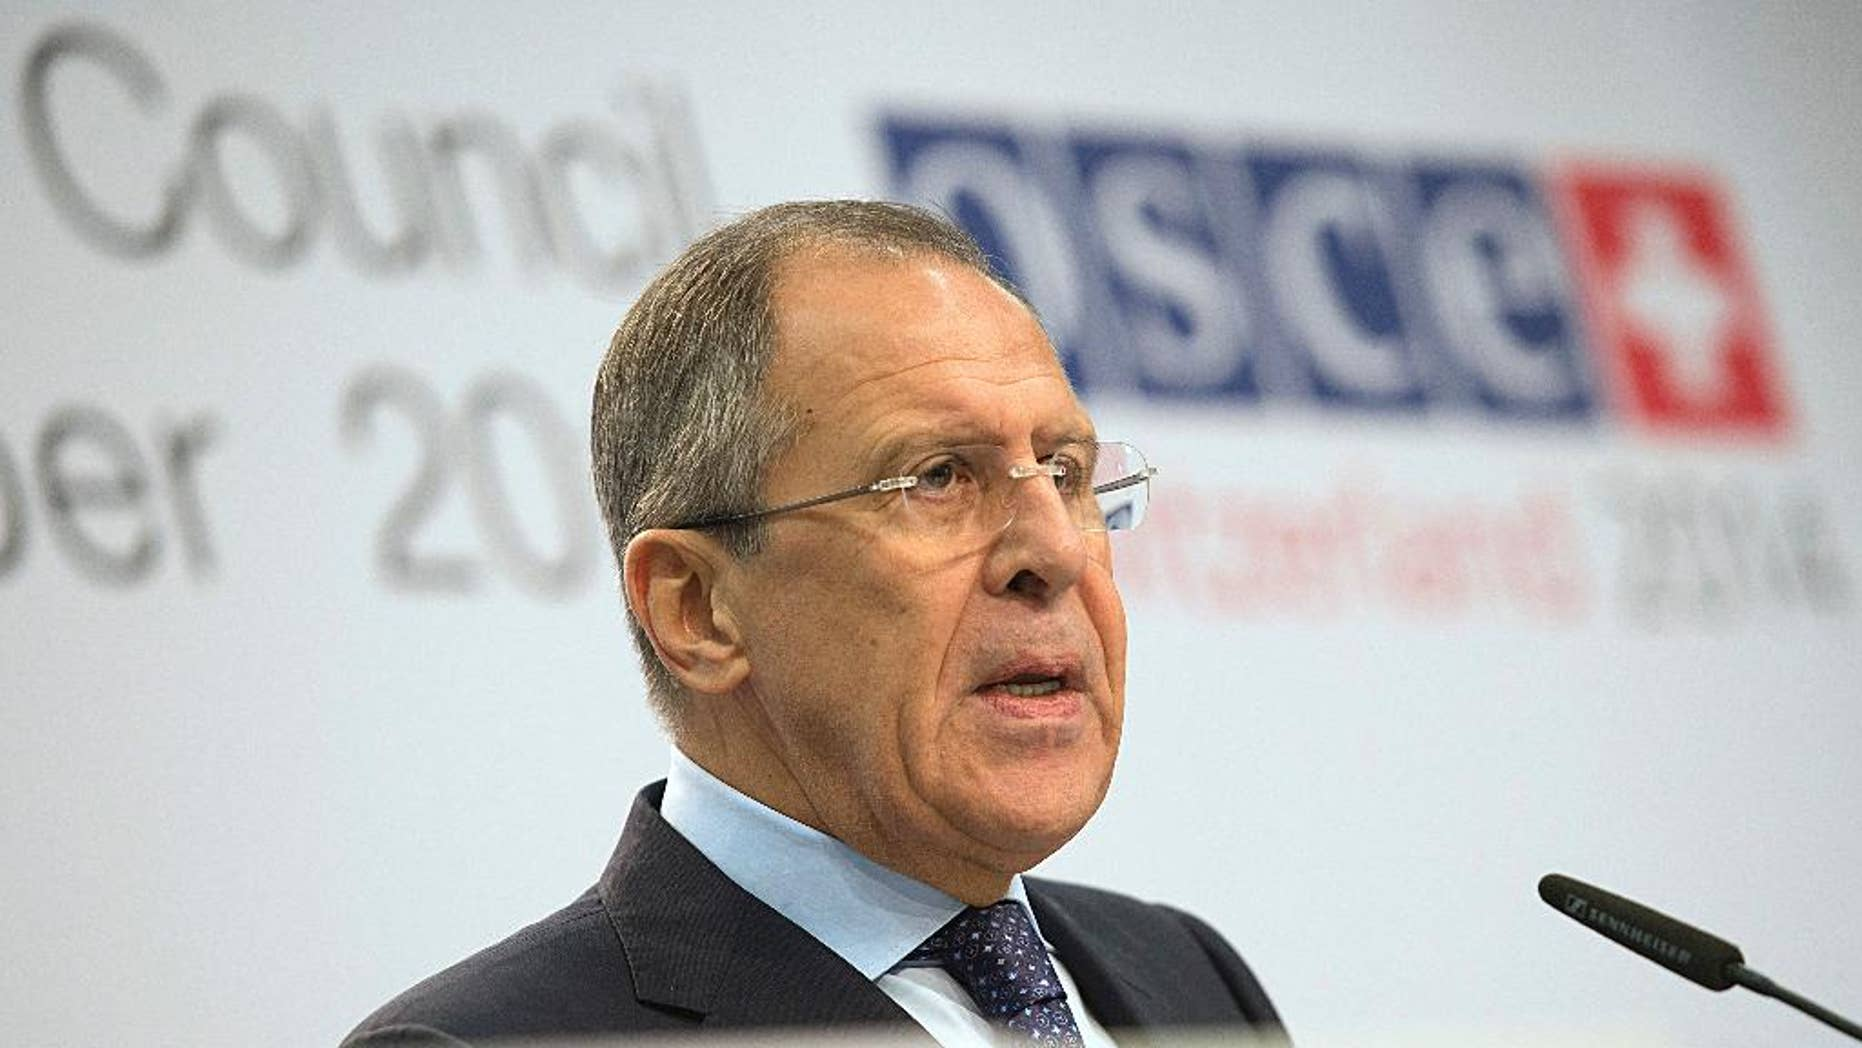 Russia's  foreign minister Sergey Lavrov,  speaks during a  news  conference at the   Organization for Security and Cooperation in Europe (OSCE) ministerial meeting in the Exhibition Center in Basel, Switzerland, on Friday, Dec.  5 2014. (AP Photo/Keystone,Georgios Kefalas)